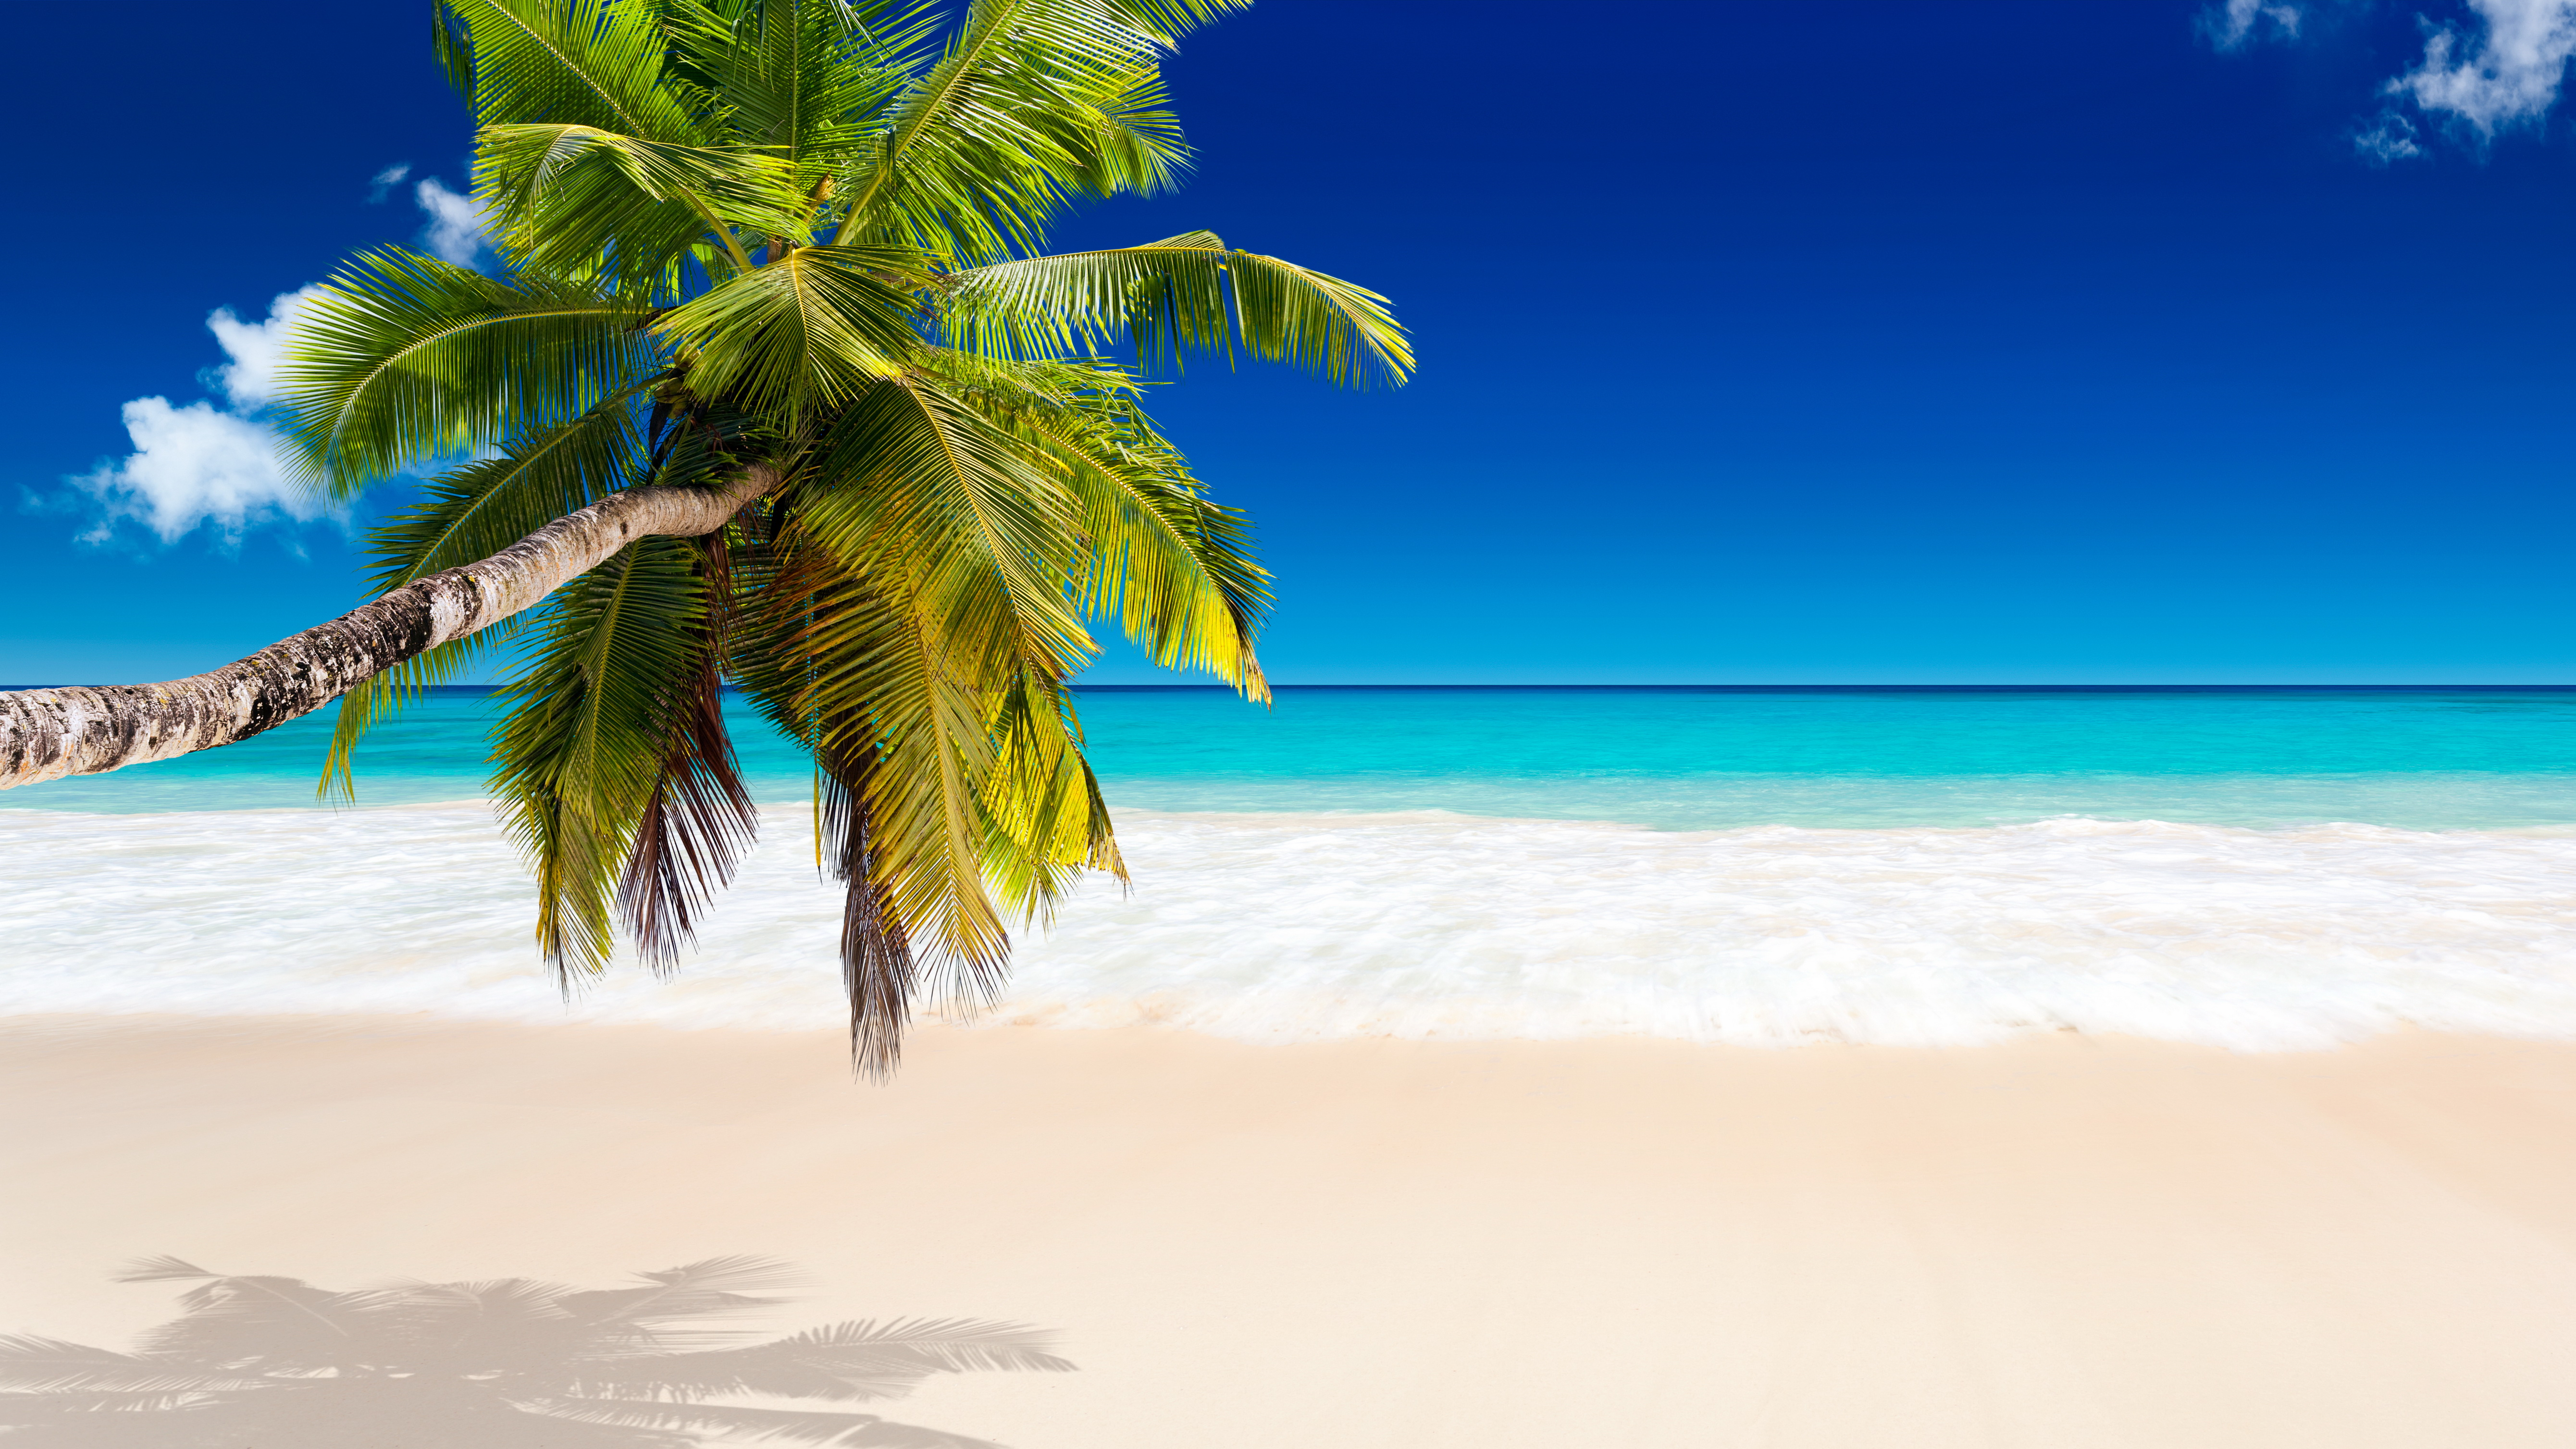 Tropical Beach Wallpapers Pictures Images 5360x3015